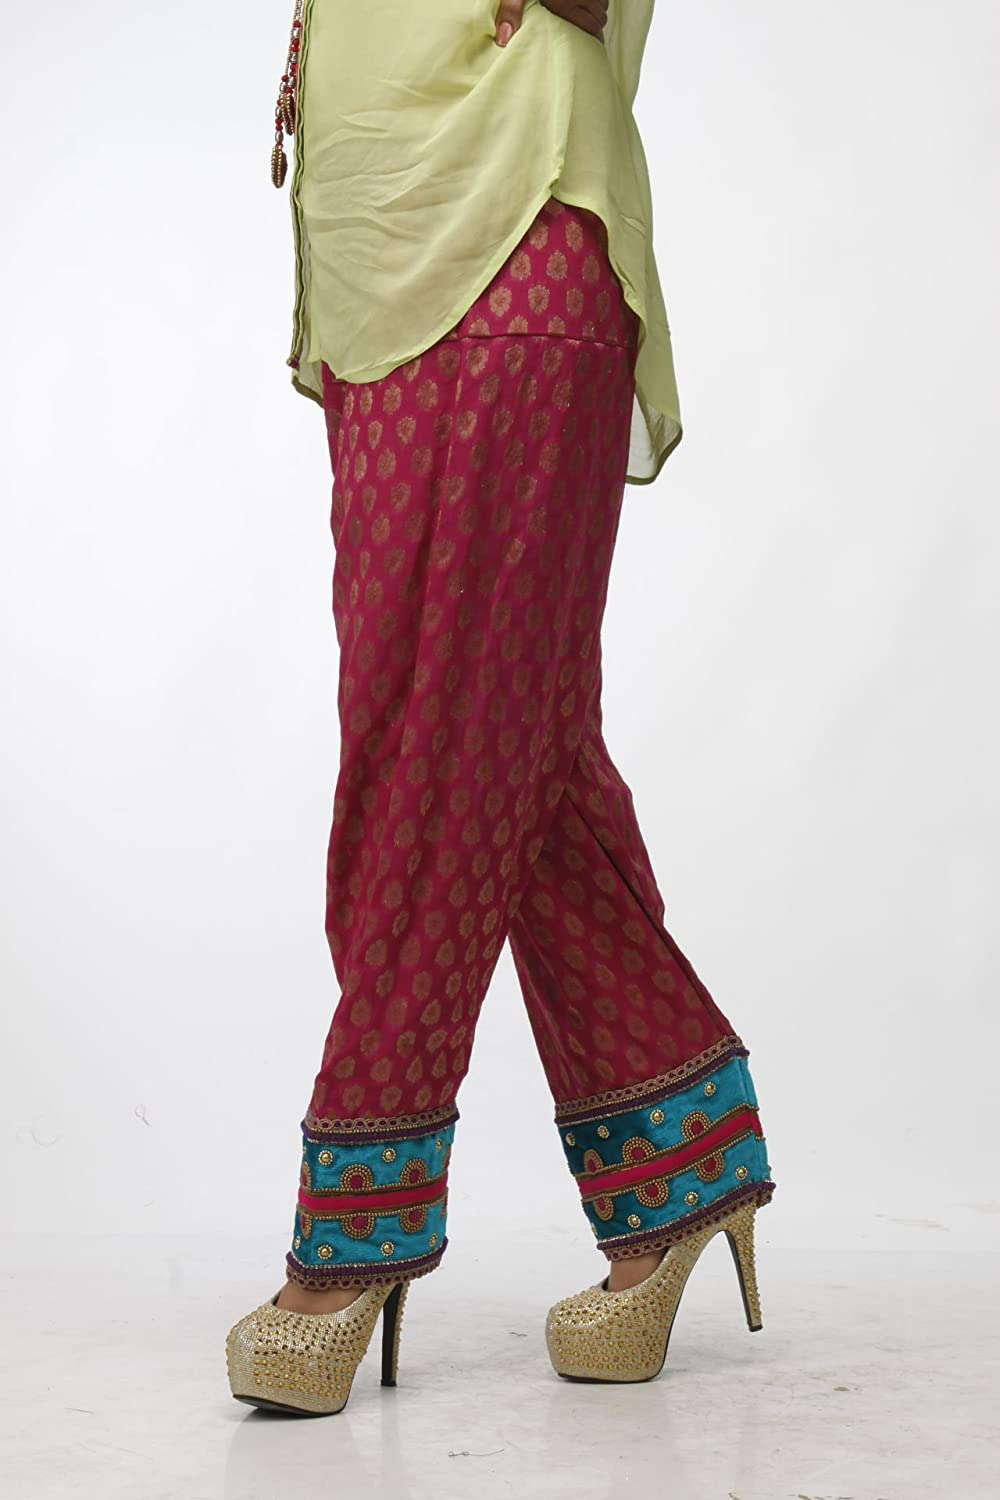 http://www.amazon.in/Adam-Eve-Women-Blended-Salwar/dp/B00KCN4NFI/ref=sr_1_215_m?s=apparel&ie=UTF8&qid=1403767279&sr=1-215